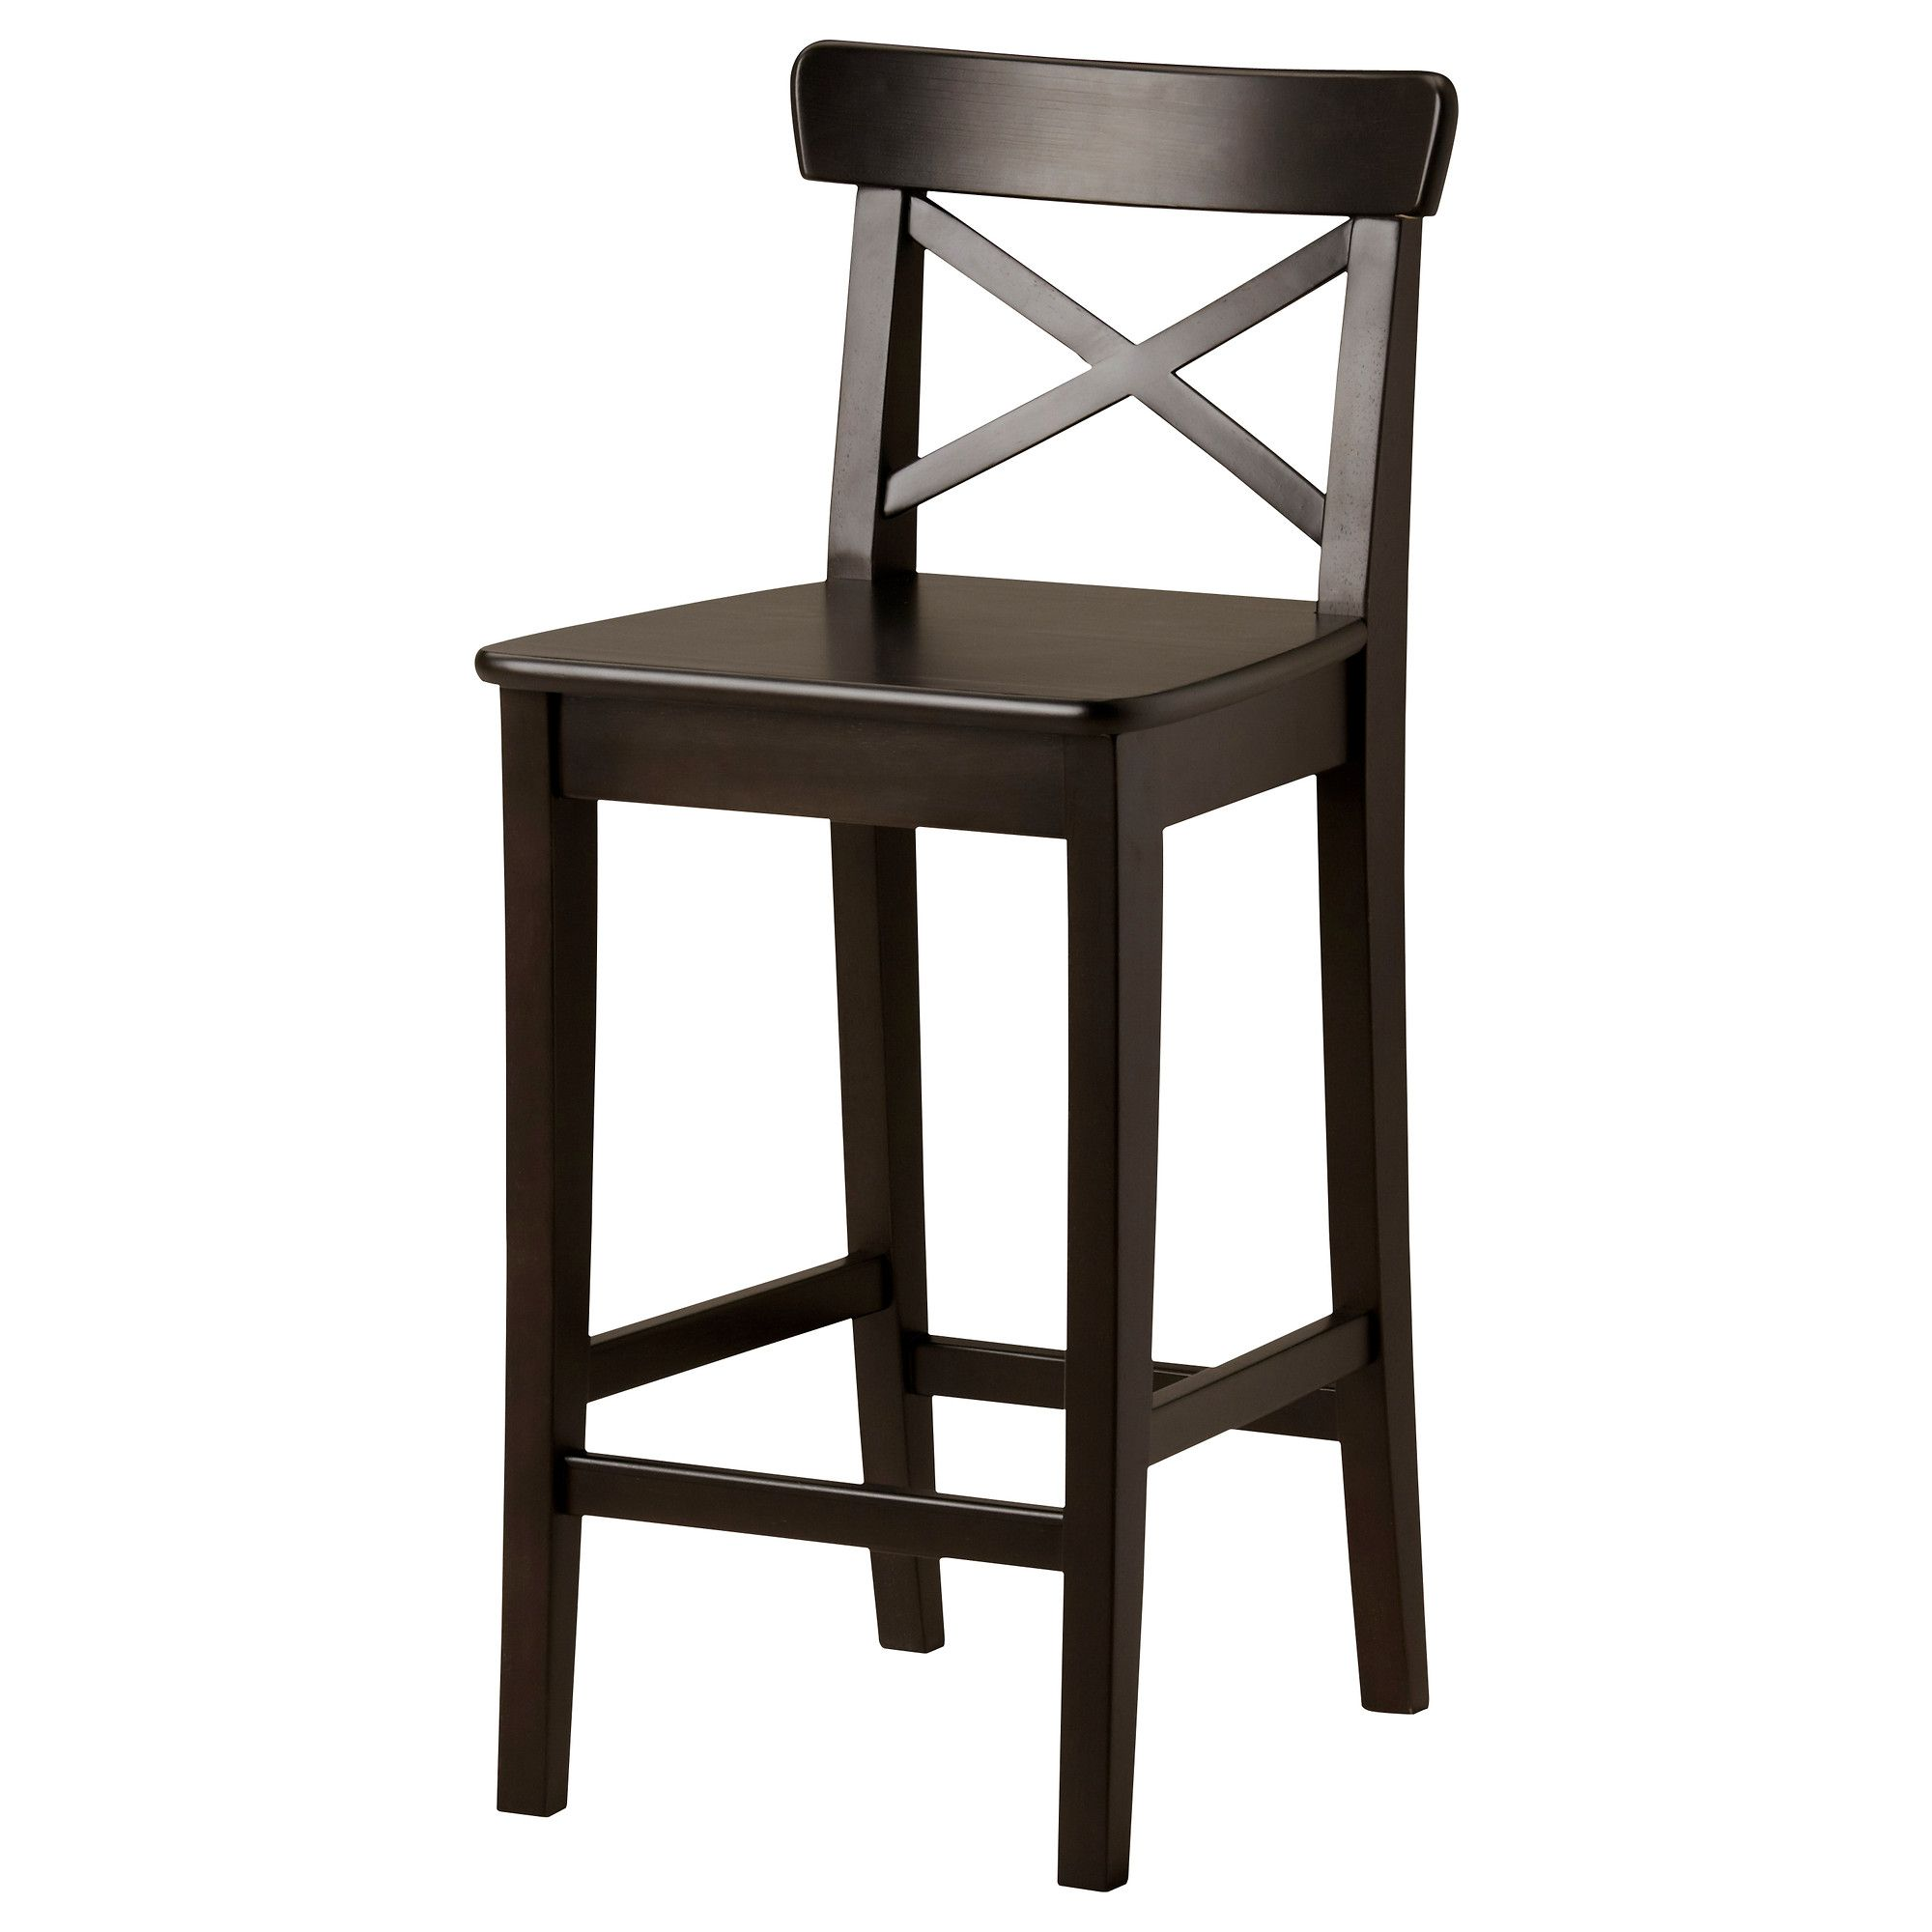 kitchen stools ikea cabinet outlet ct ingolf bar stool with backrest brown black 24 3 4 59 99